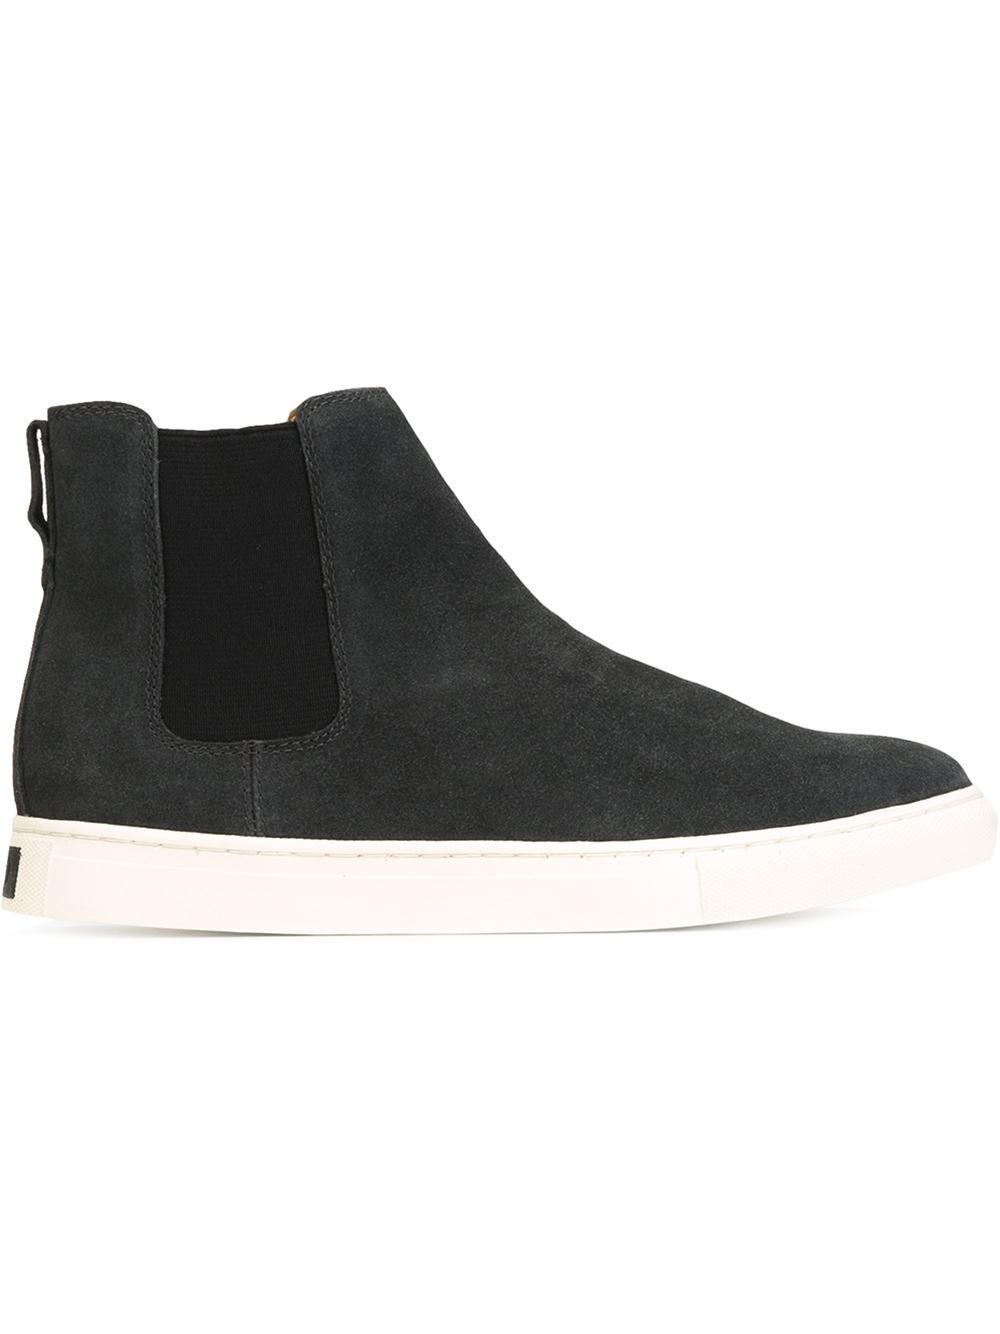 Black And White High Top Polo Shoes